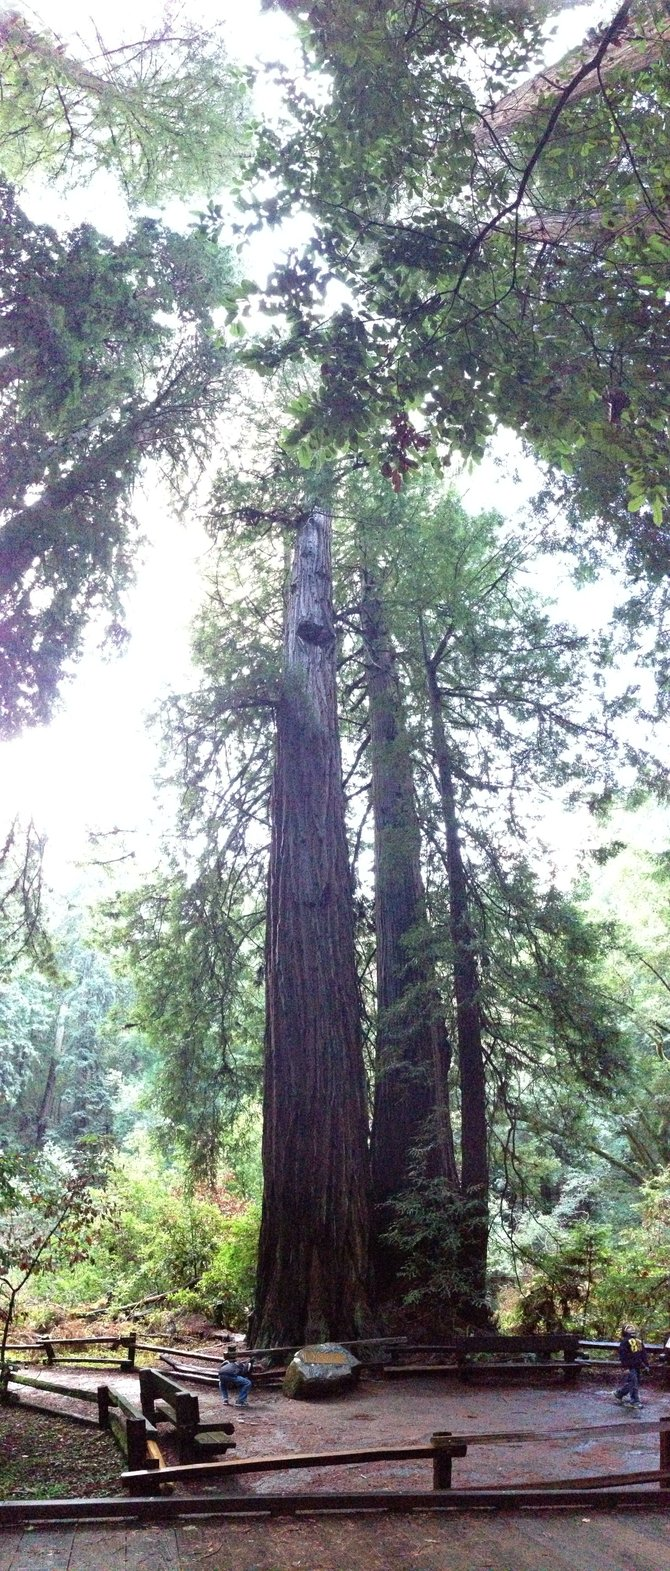 Muir Woods outside of San Francisco.  (12/26/12)